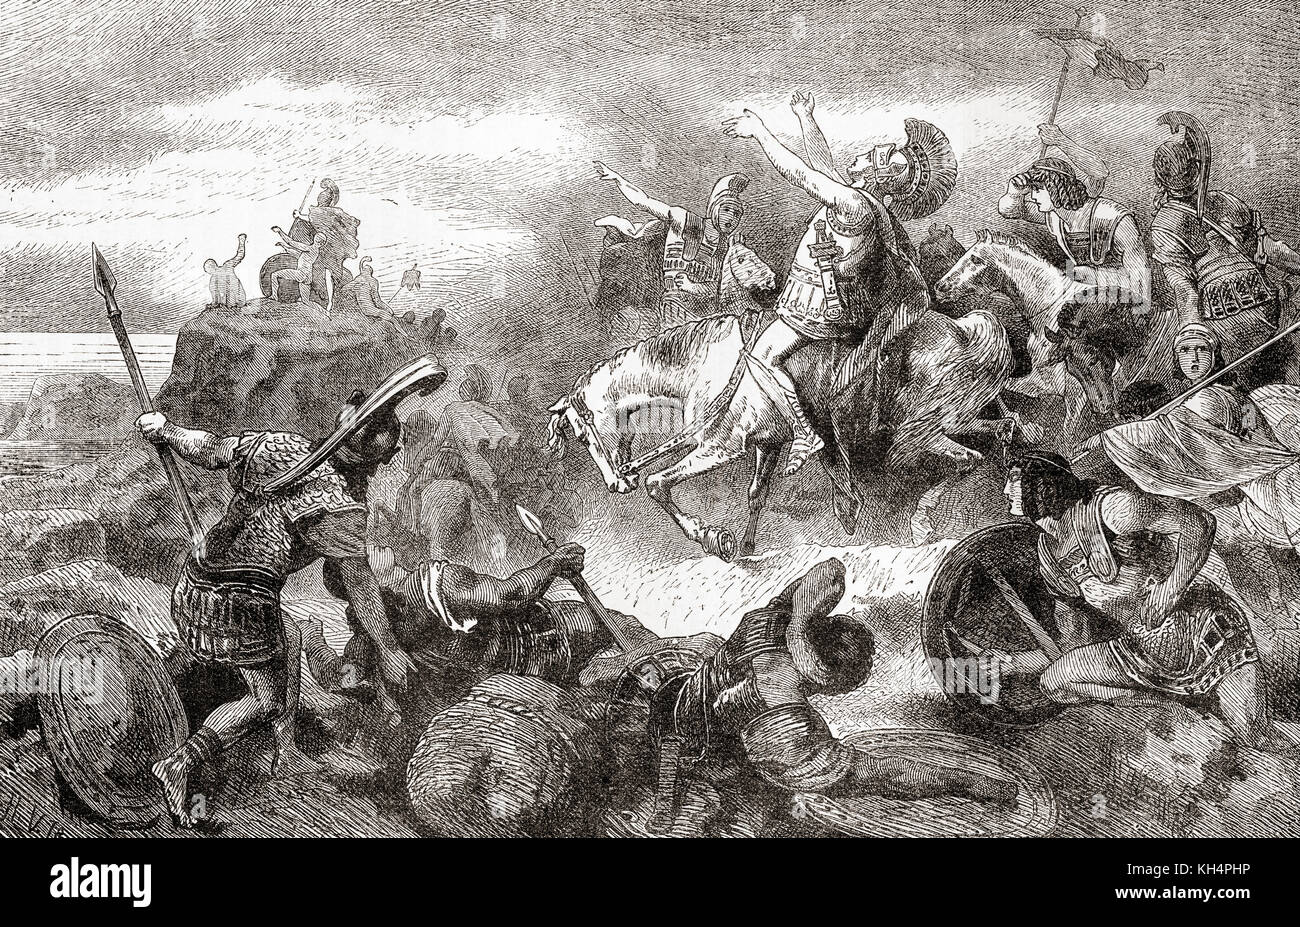 Xenophon and the Ten Thousand coming in sight of the sea after their march back from the Battle of Cunaxa.  Xenophon - Stock Image